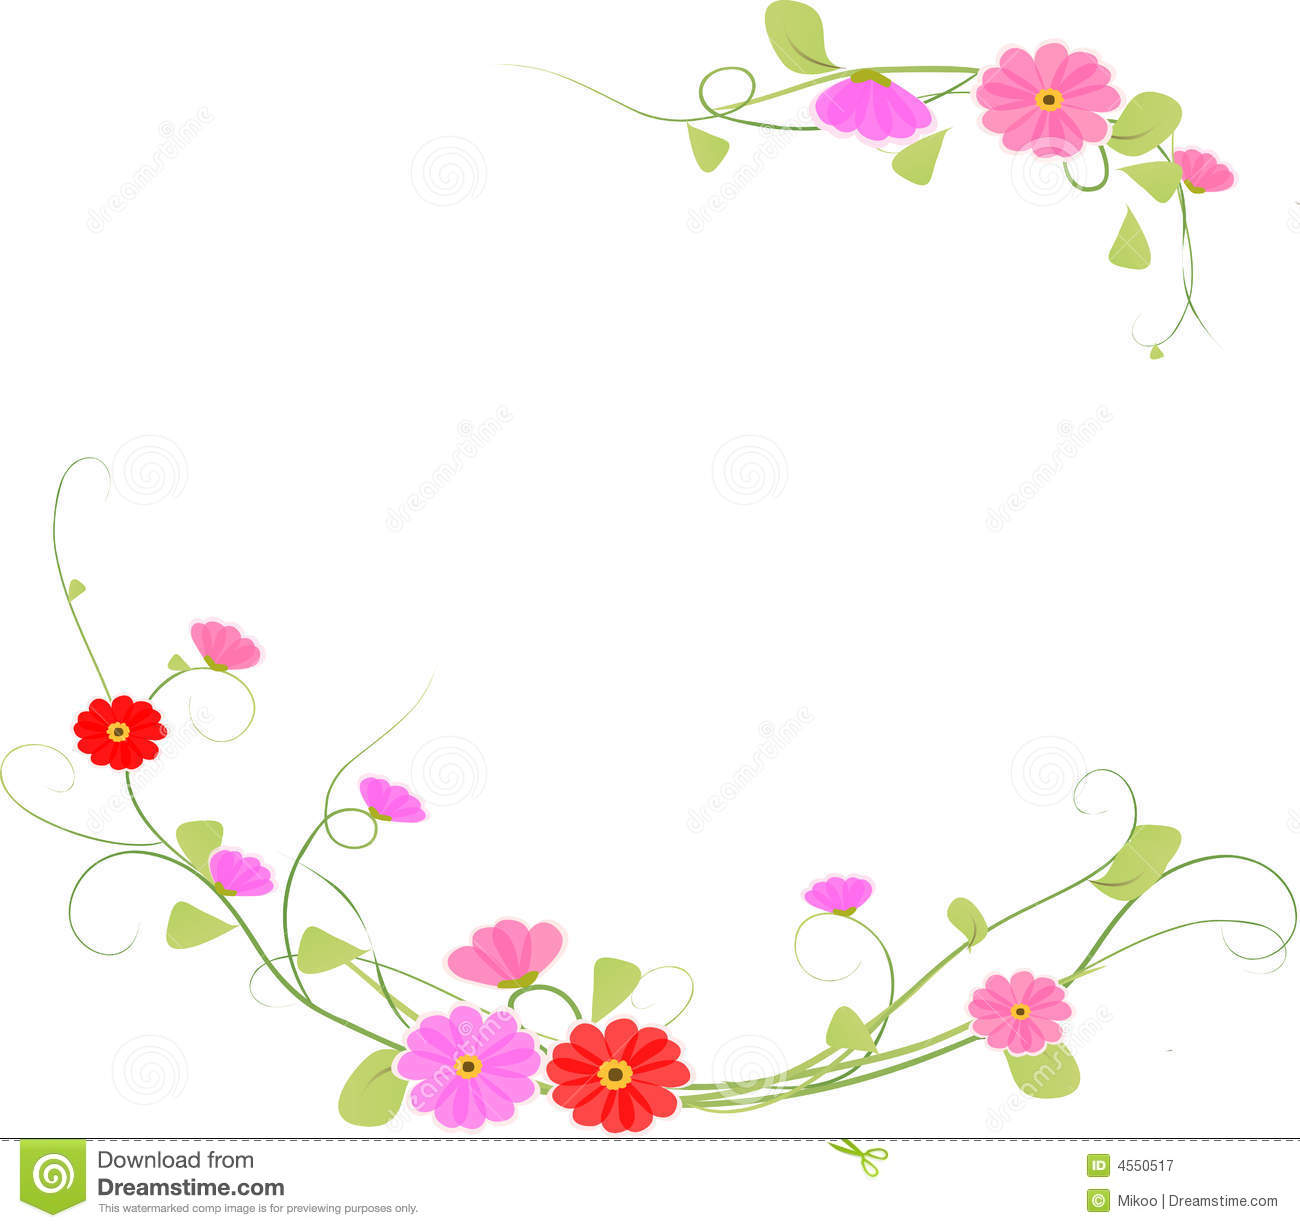 Background flower, vector